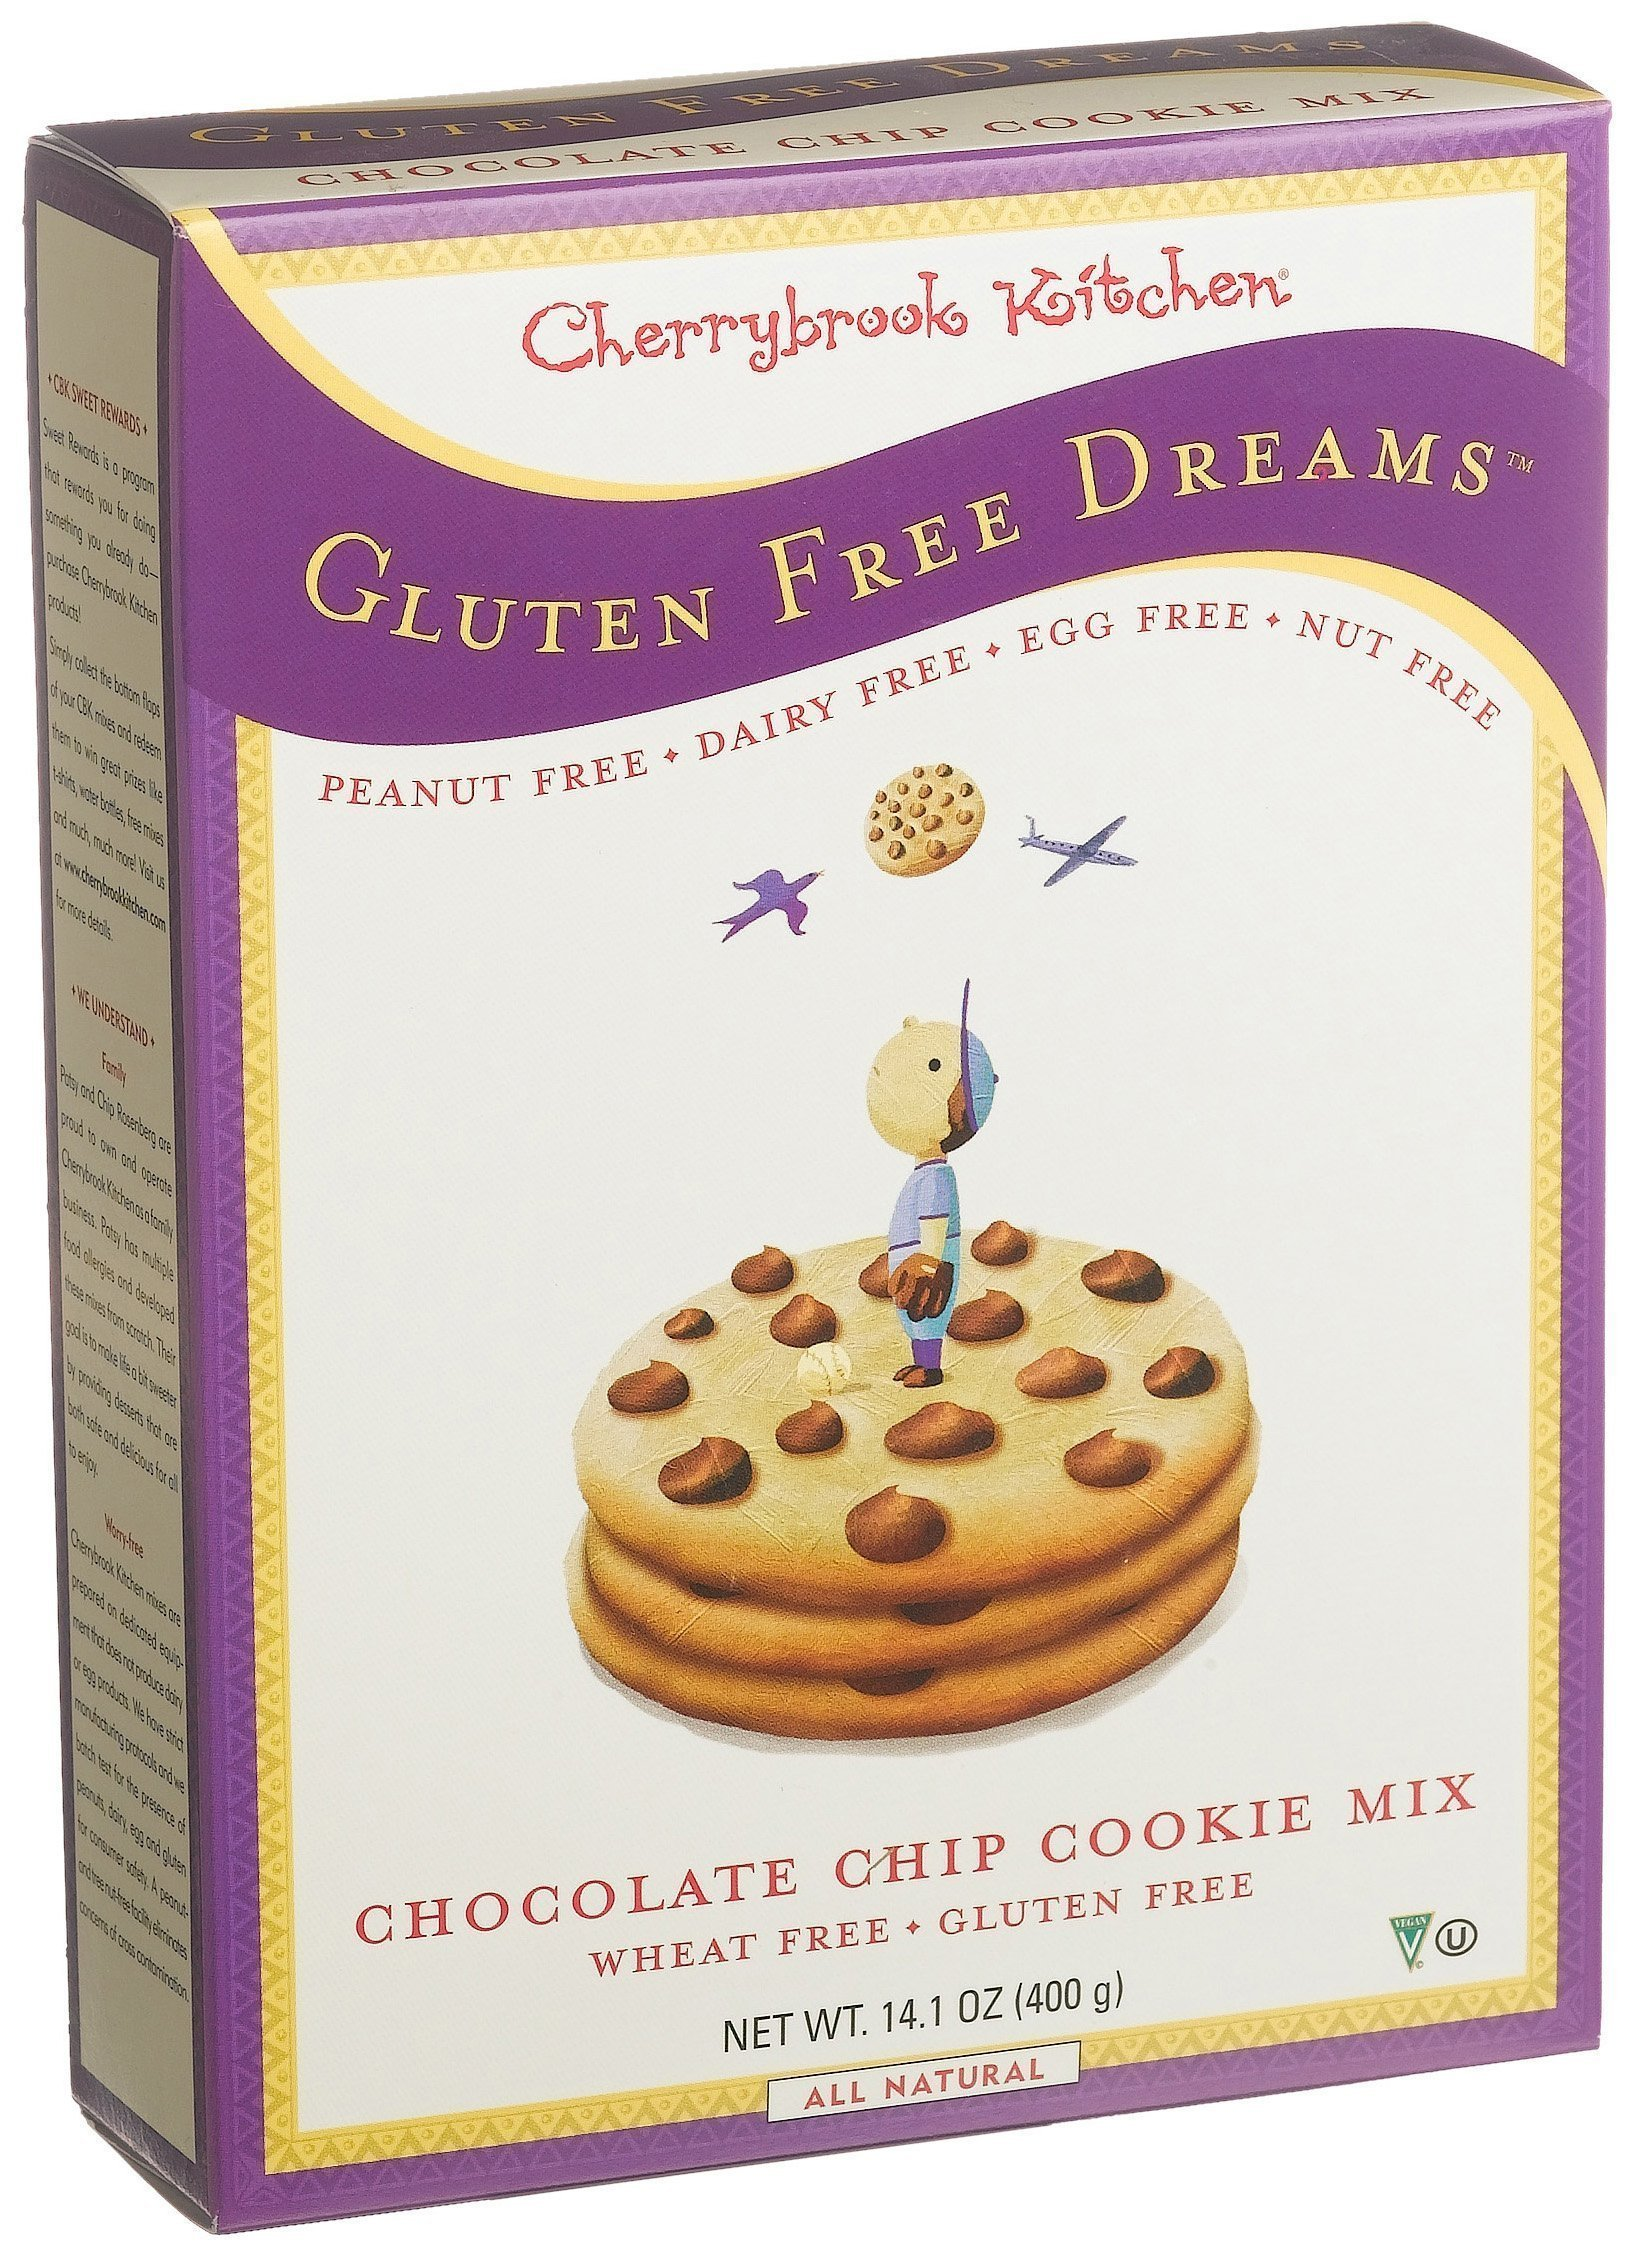 Cherrybrook Kitchen Gluten Free Dreams, Chocolate Chip Cookie Mix, 14.1-Ounce Boxes (Pack of 6) by Cherrybrook Kitchen